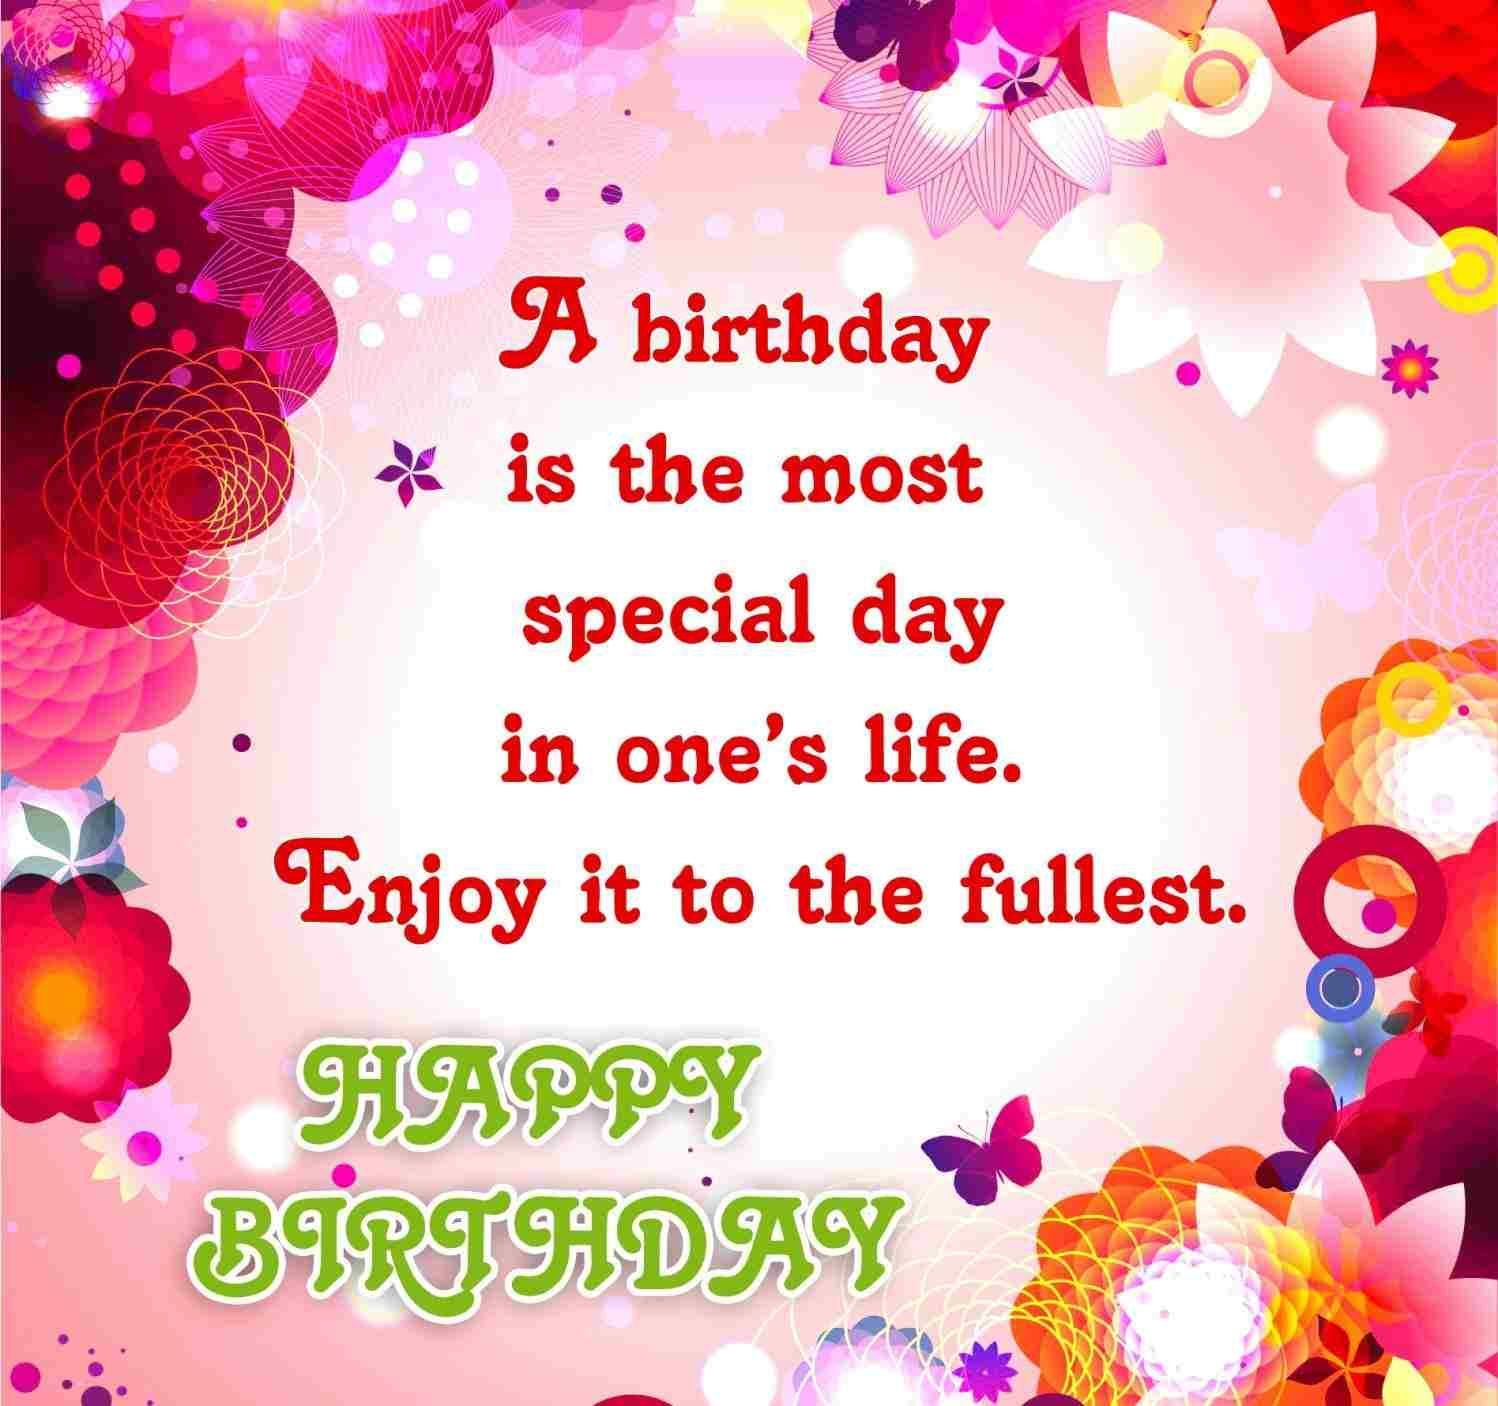 Birthday wishes quotes 05202014friendangelwallpaperblgbma birthday wishes quotes 05202014friendangelwallpaperblgbma beautiful quotes for friend birthday beautiful birthday quotes quotesgram lovely and m4hsunfo